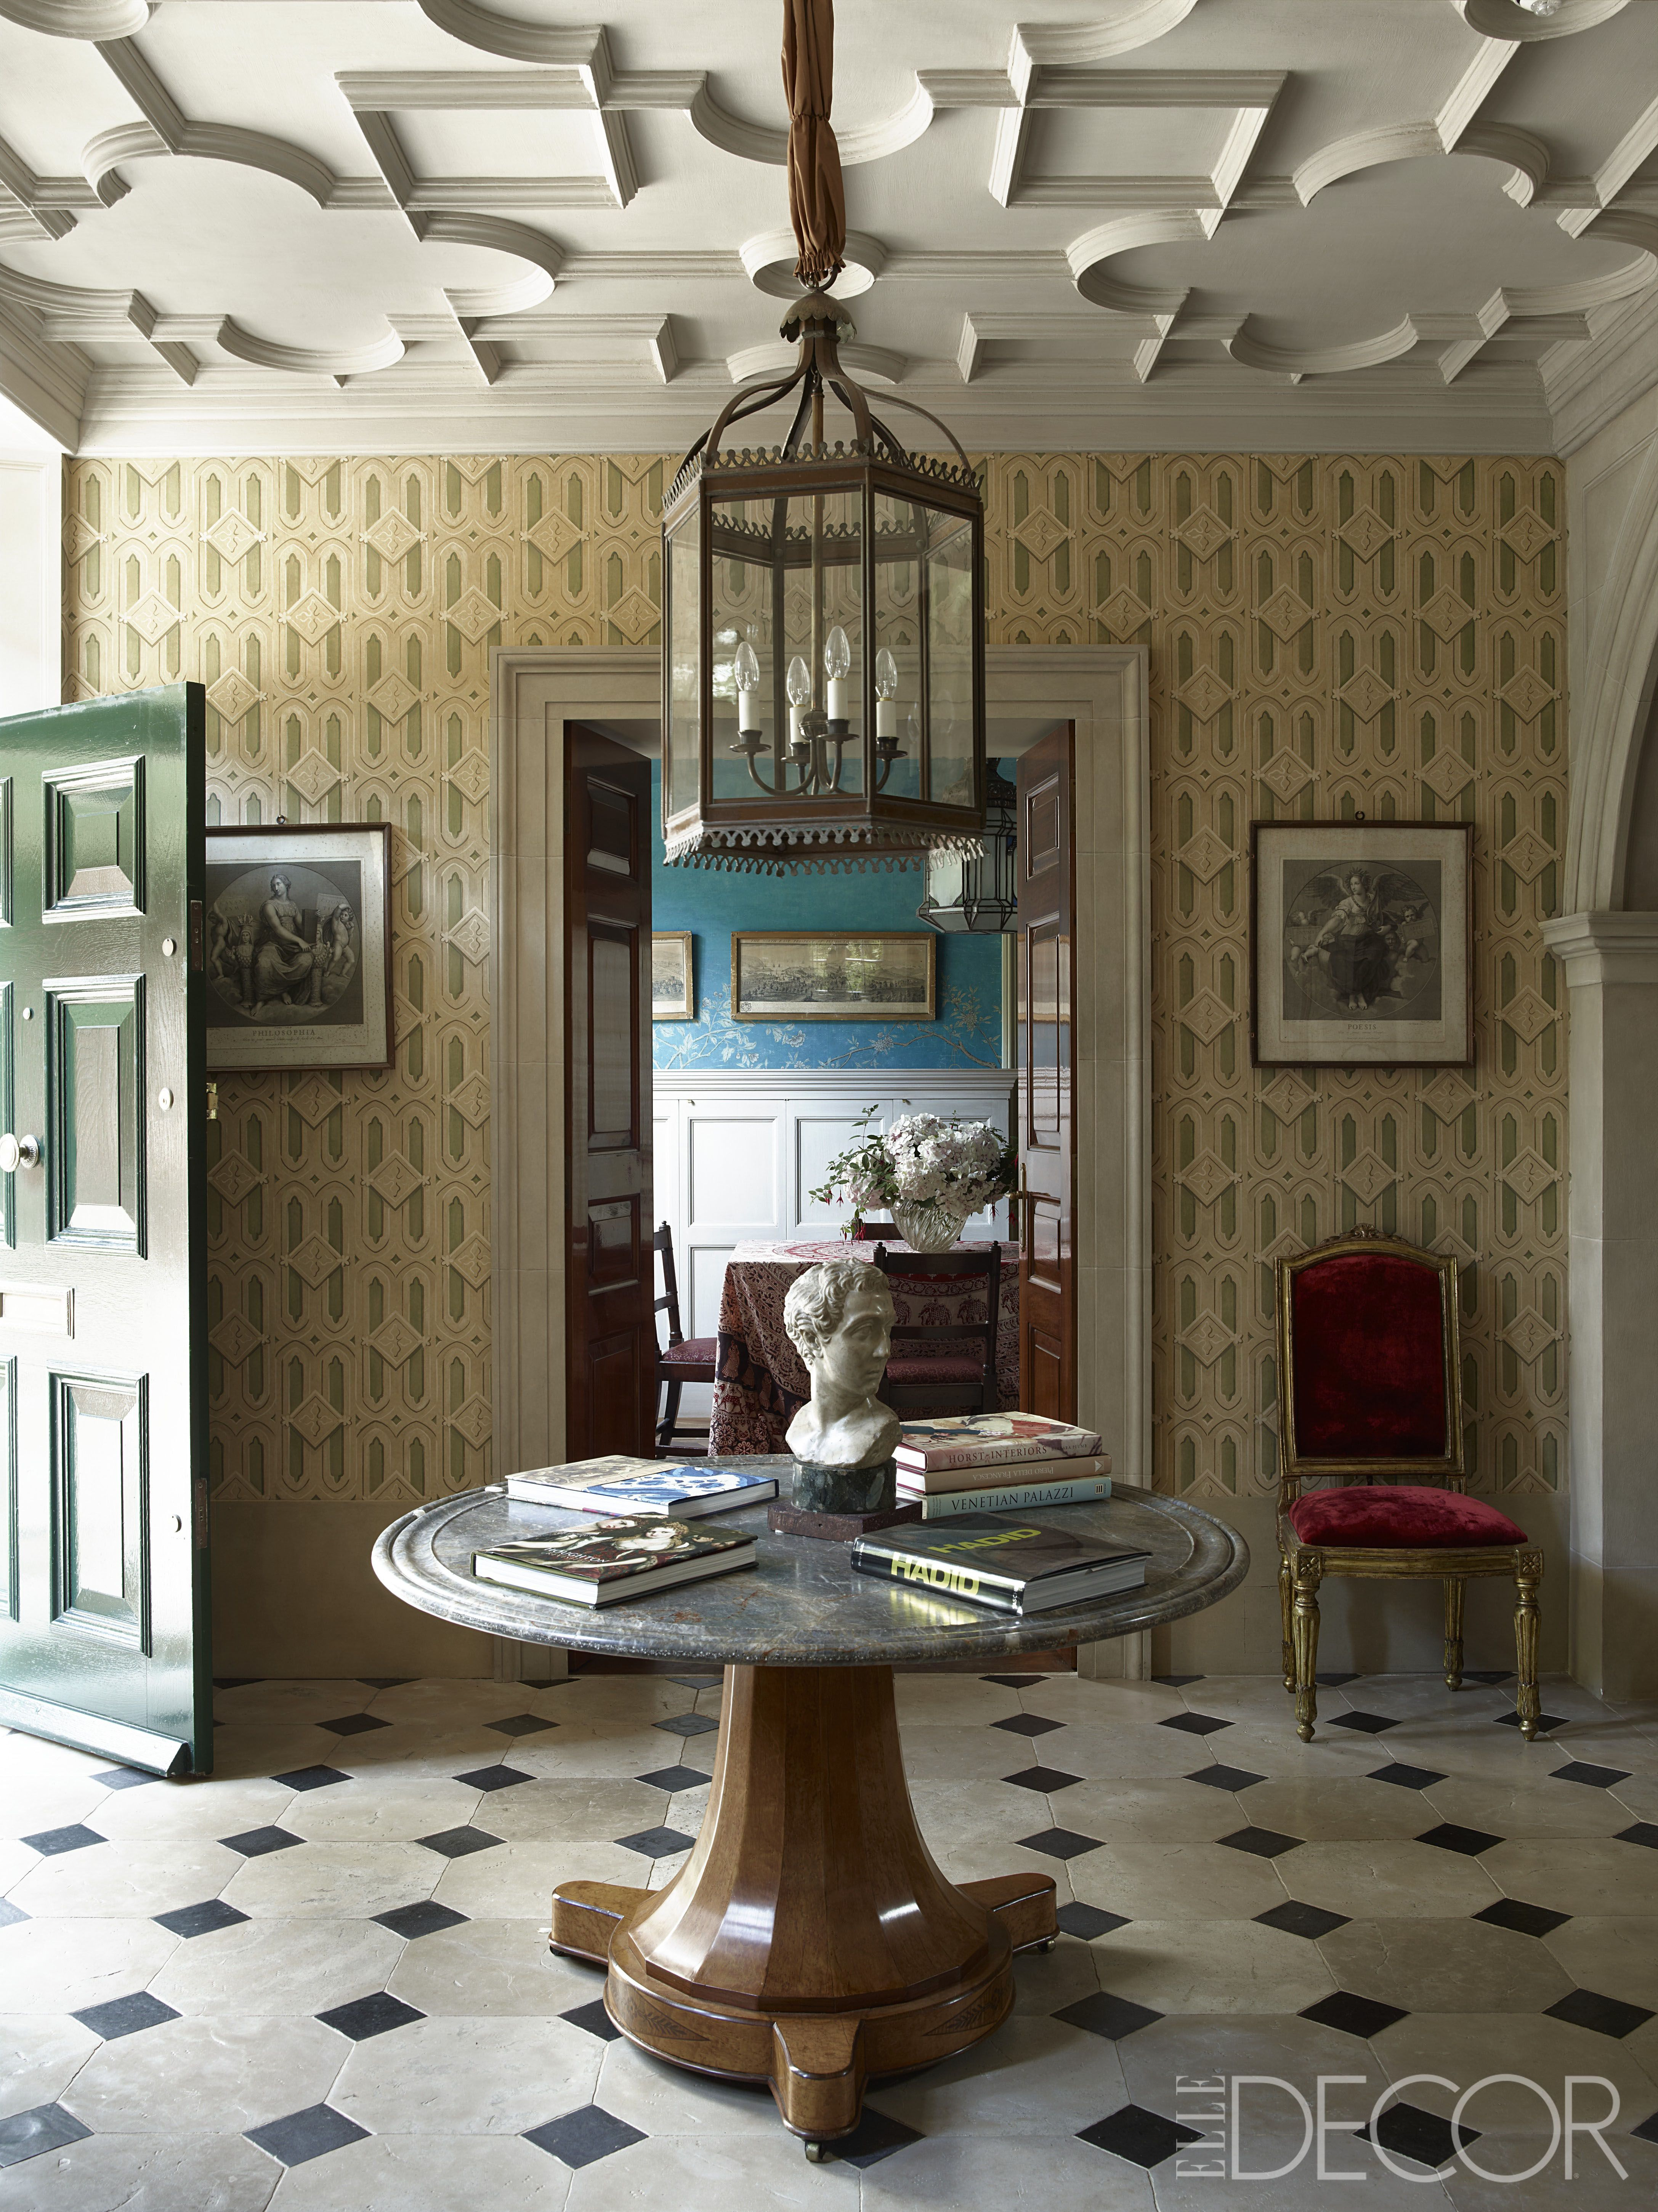 th century english lantern hangs above th french center table in also prizm vintage prizmv on pinterest rh